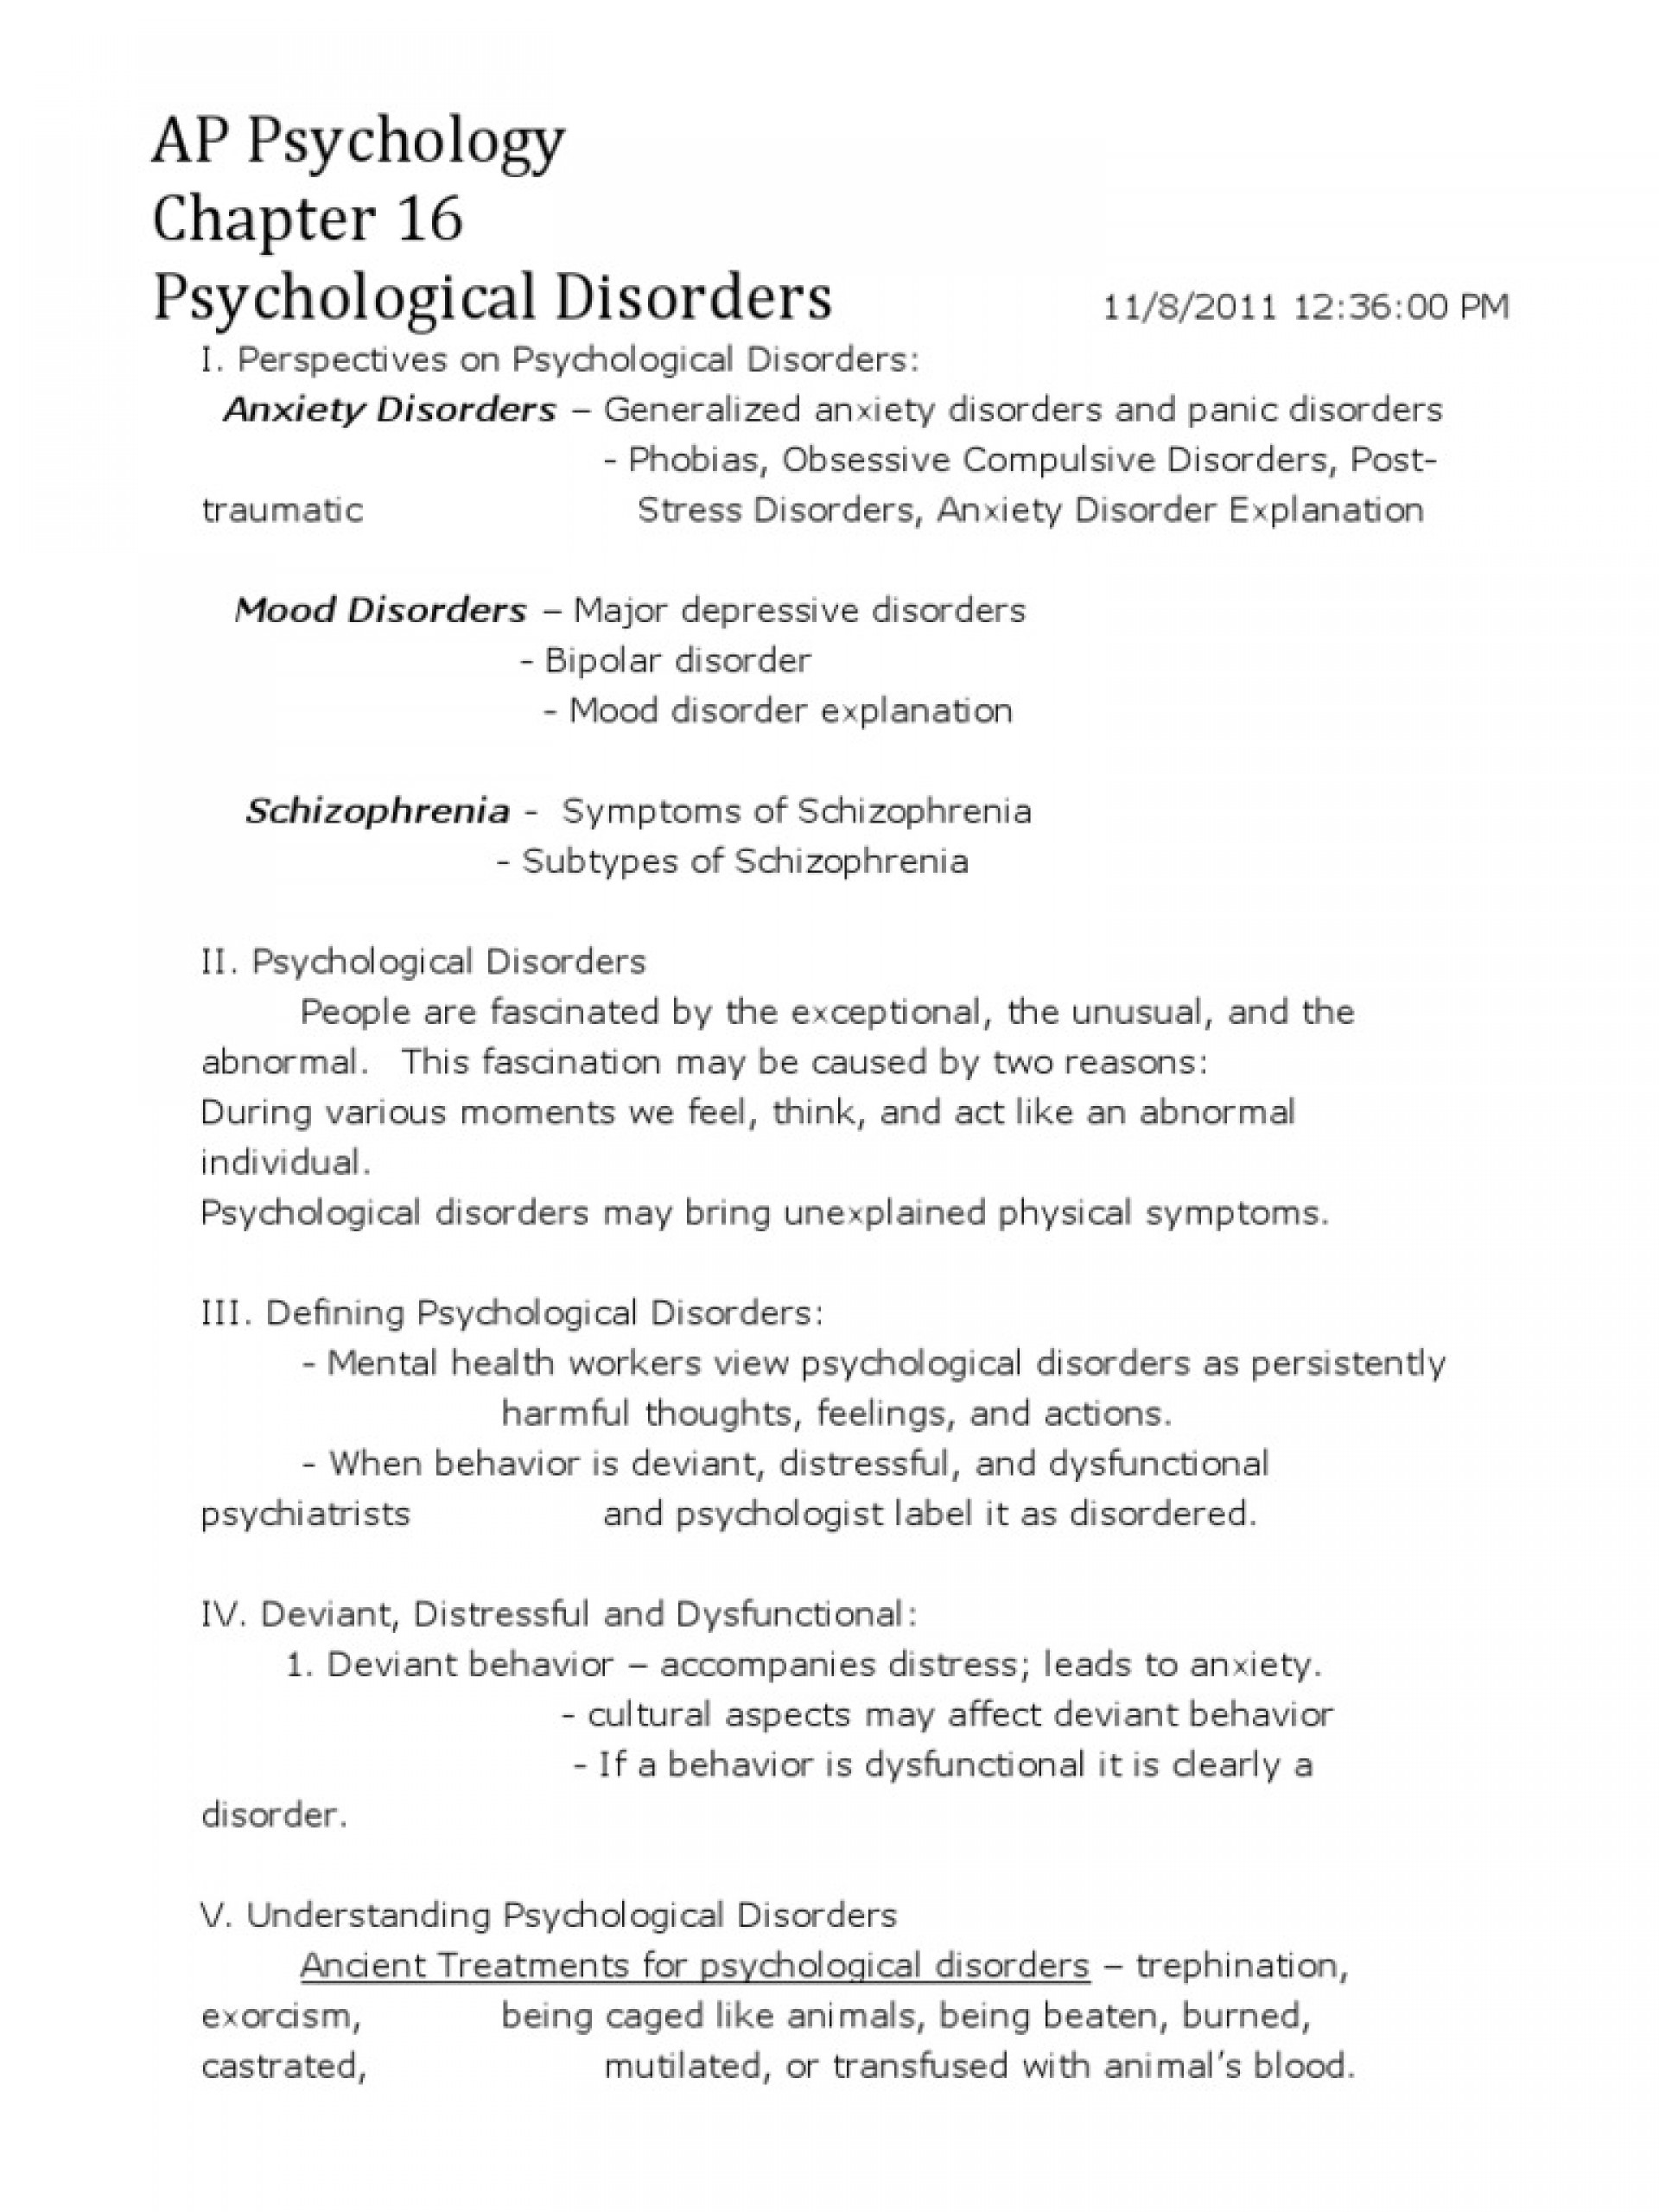 017 Research Paper Ideas Bipolar Disorder Essay Topics Title Pdf College Introduction Question Conclusion Examples Unusual Activities For High School Students Unique History Topic Developmental Psychology 1920